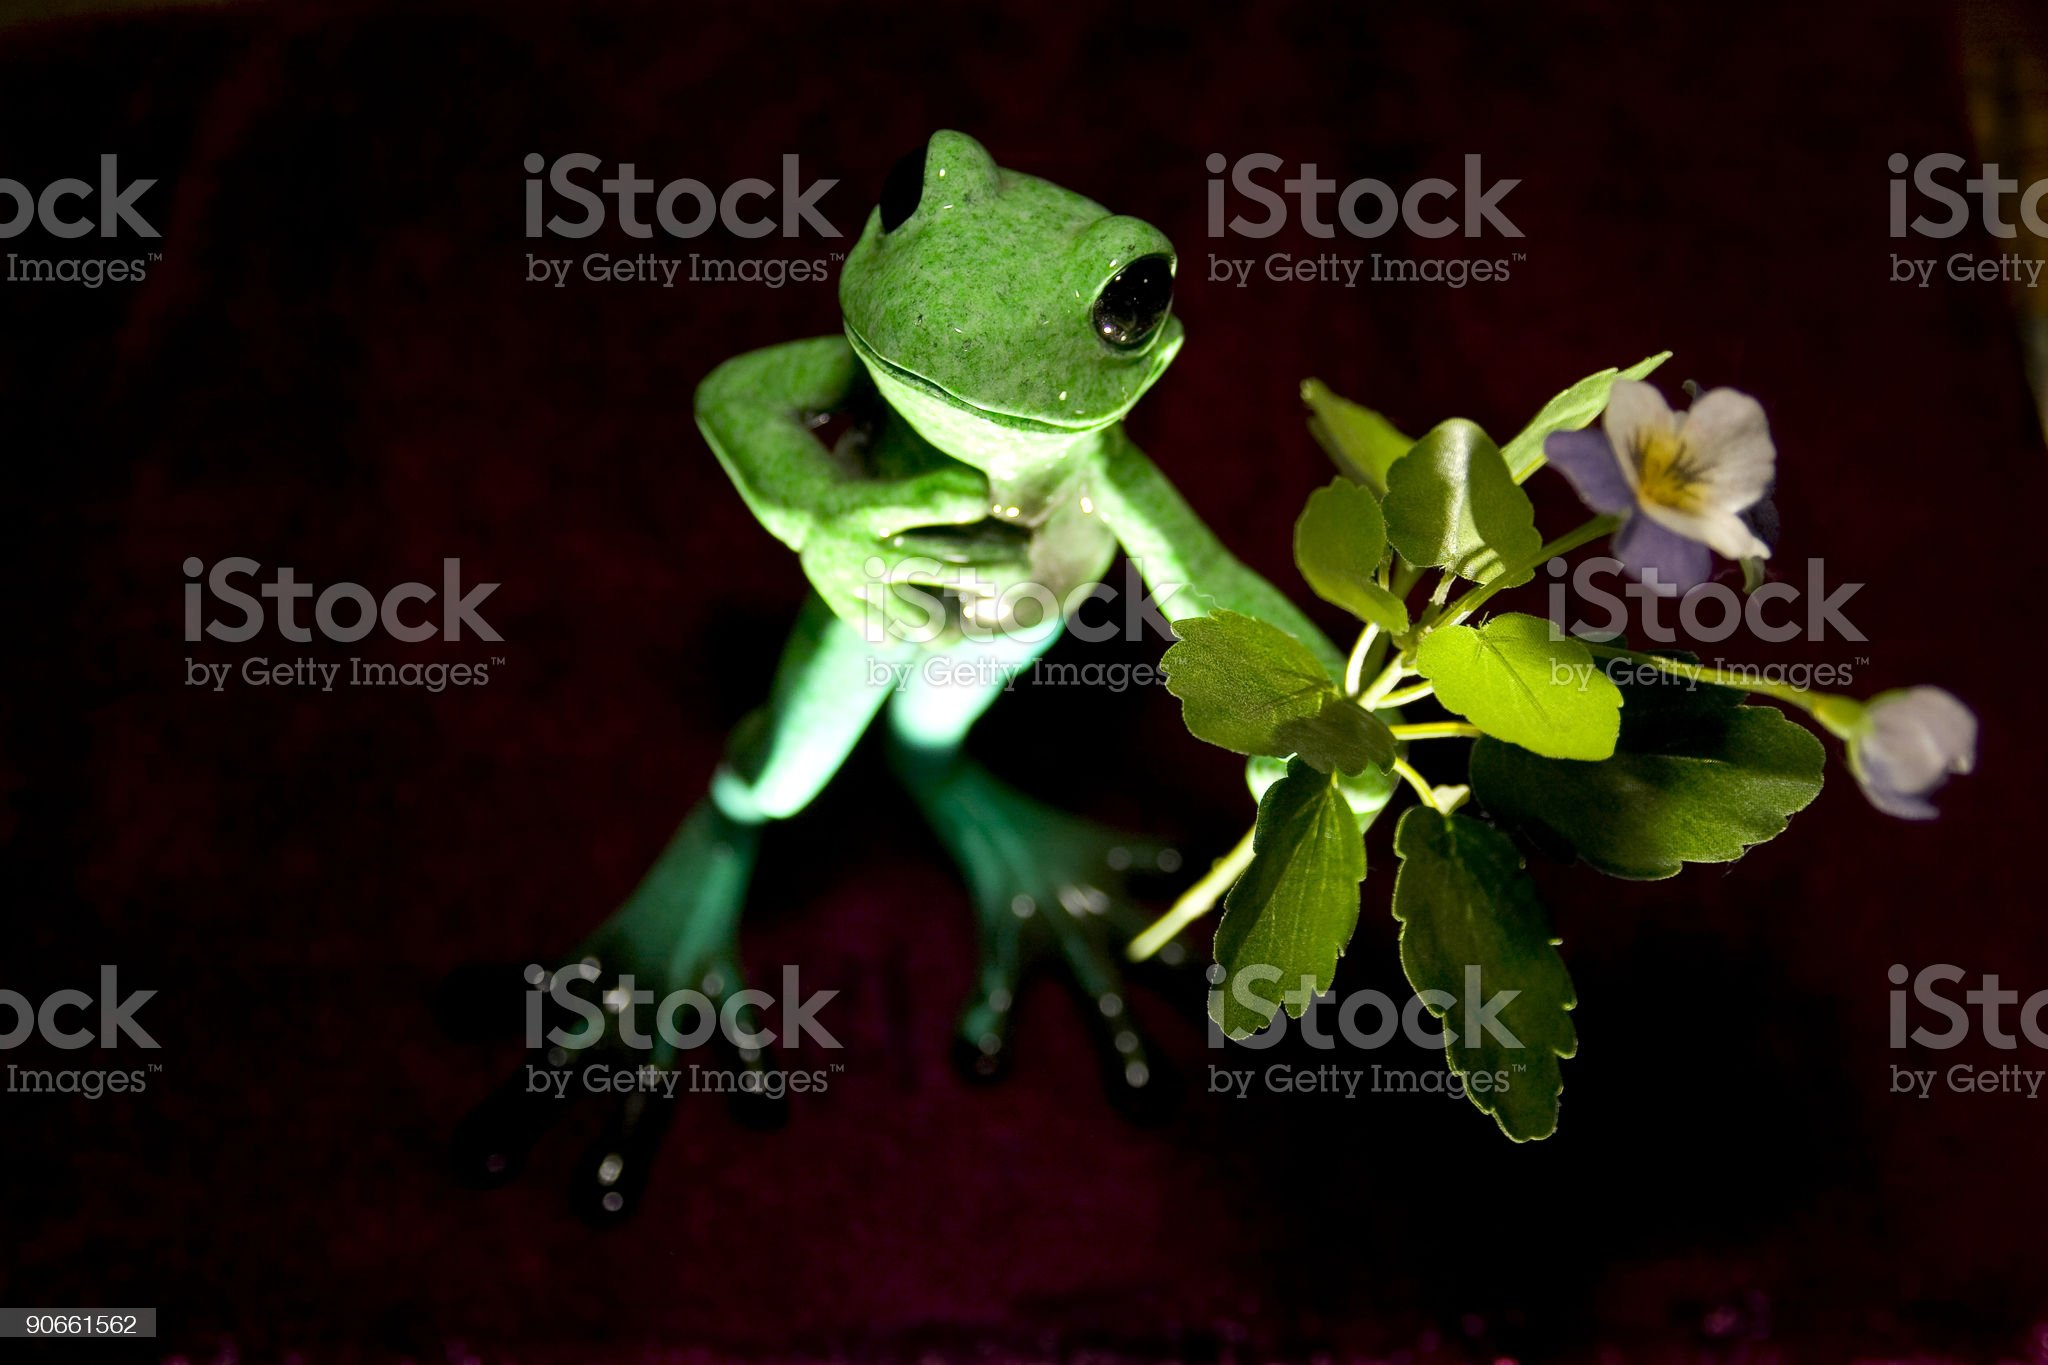 Frog with Flowers royalty-free stock photo